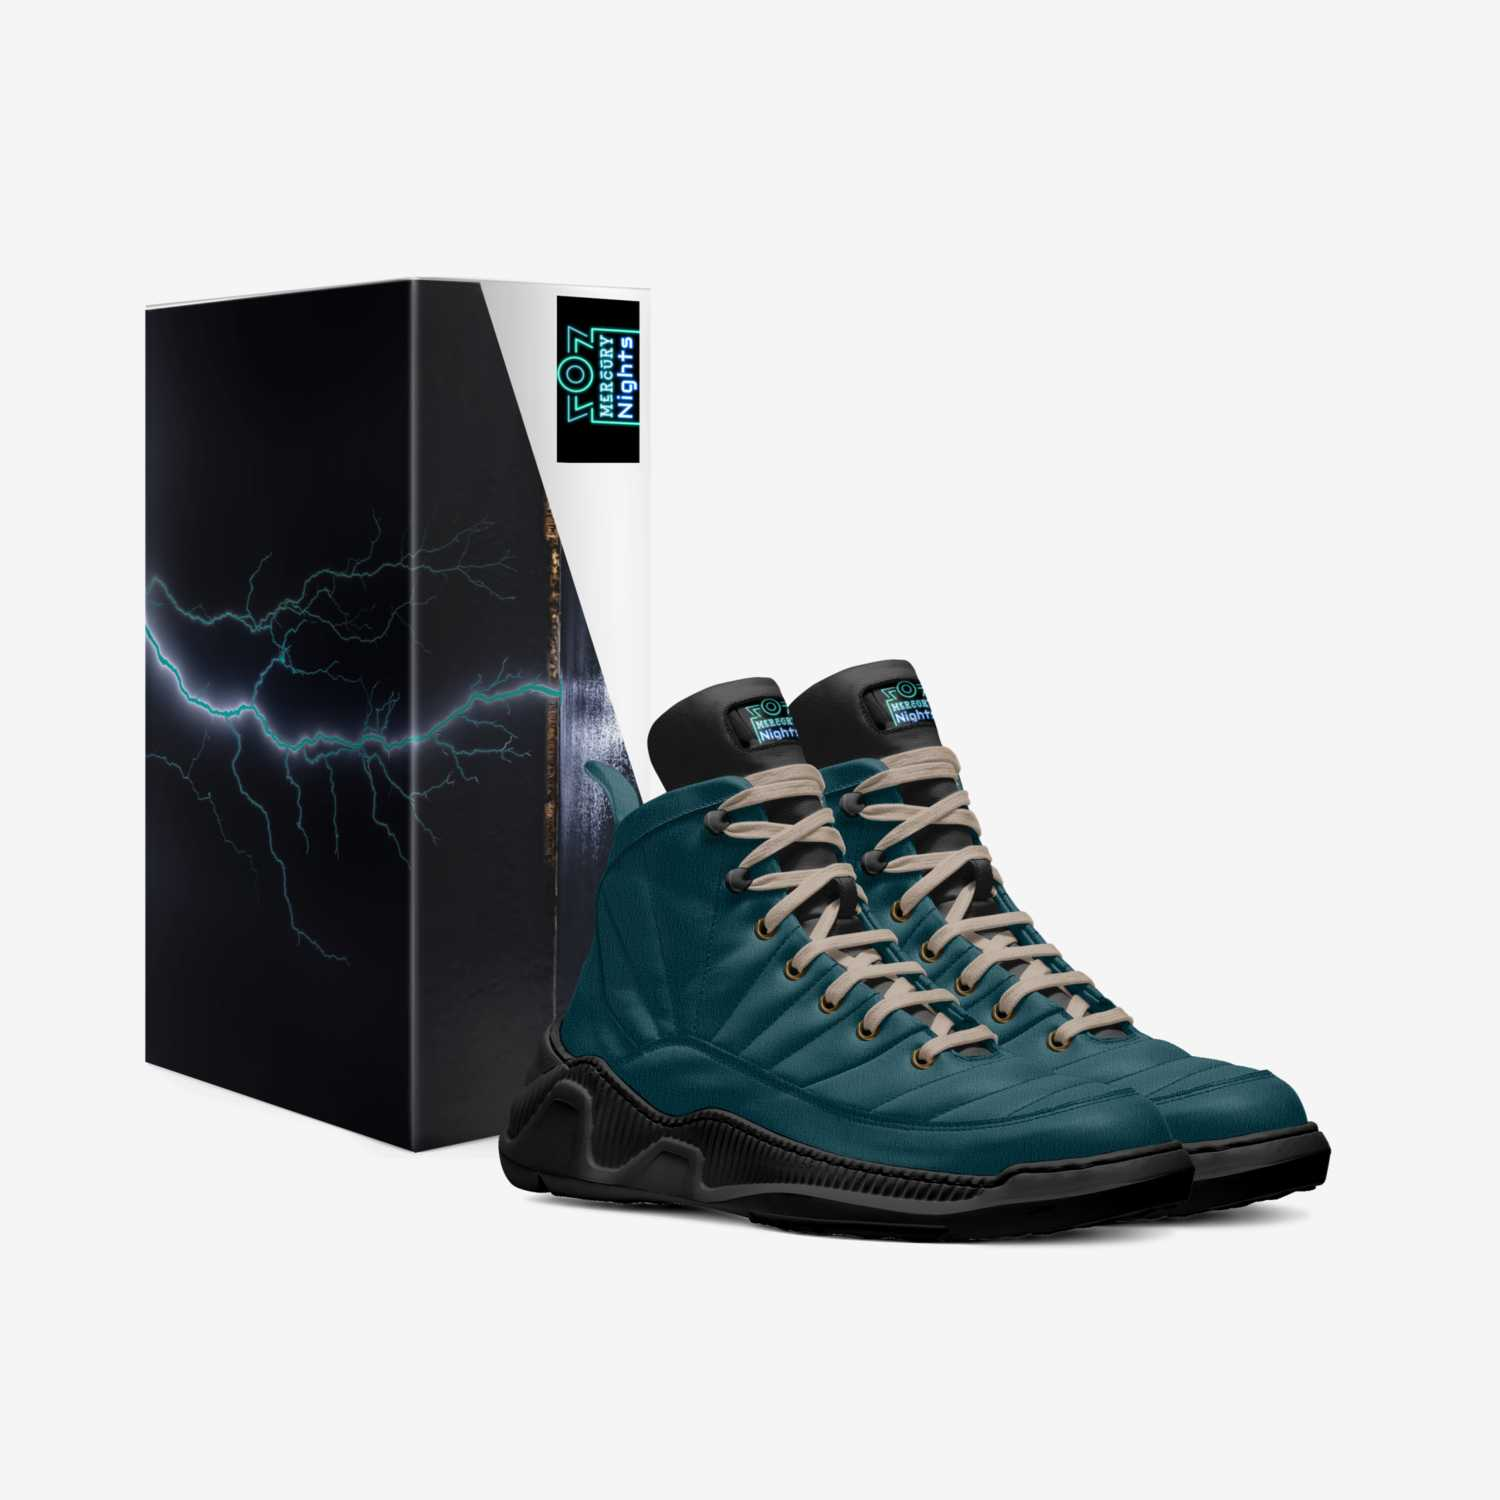 Mercury Nights custom made in Italy shoes by Charles Harewood Jr | Box view